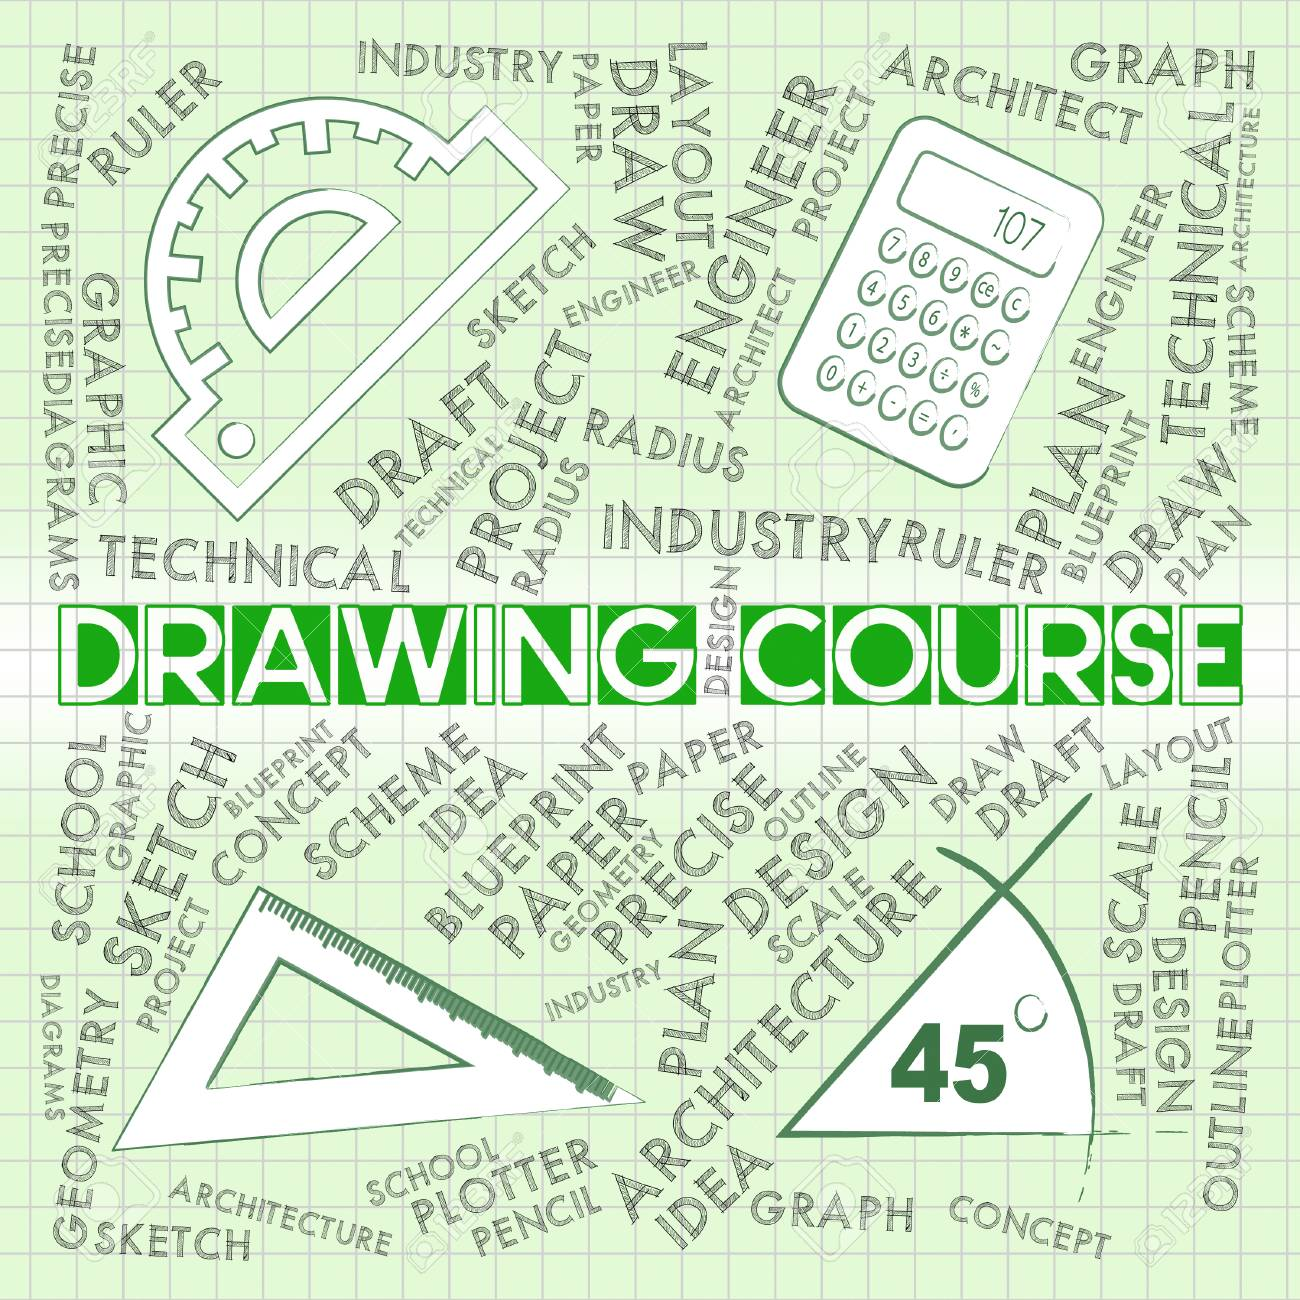 Drawing course meaning sketch designer and school stock photo drawing course meaning sketch designer and school stock photo 60691581 malvernweather Gallery